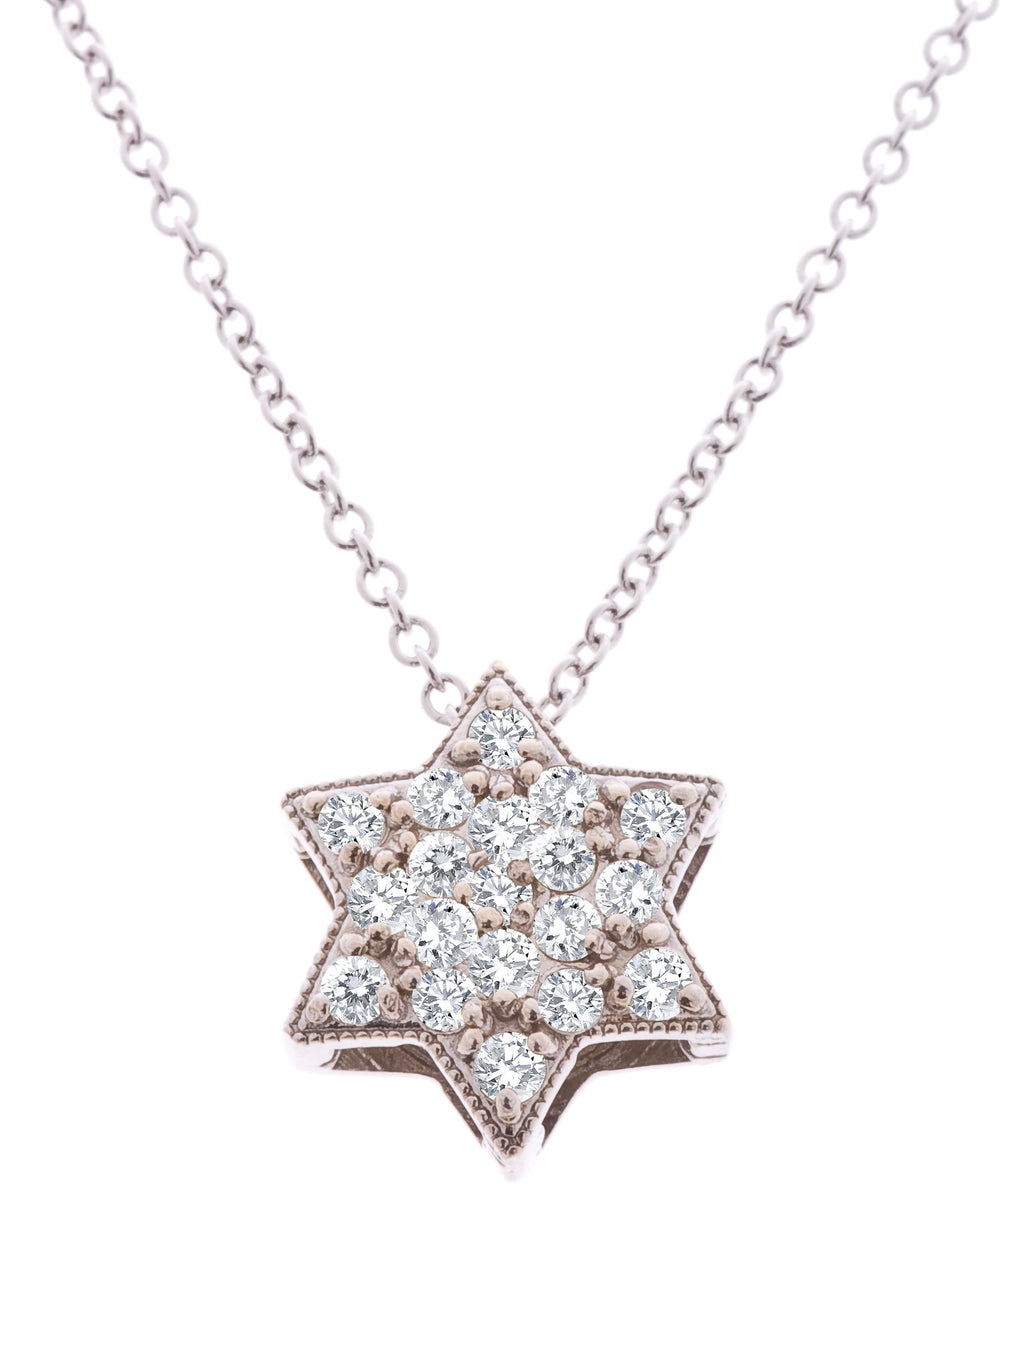 Pave Star of David Necklace in Gold - Alef Bet Jewelry by Paula